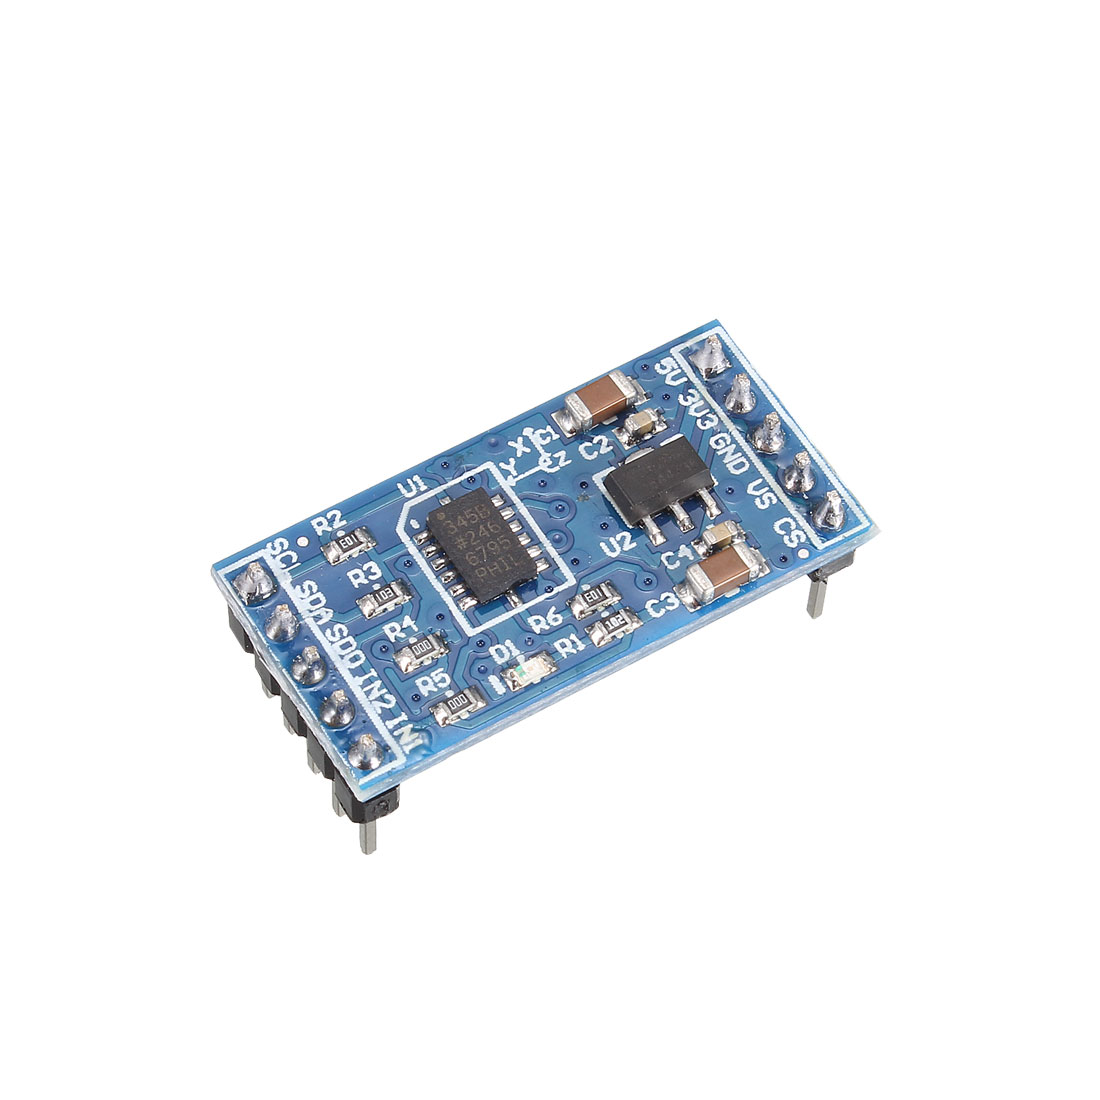 ADXL345 3-Axis Digital Acceleration Gravity Tilt Module